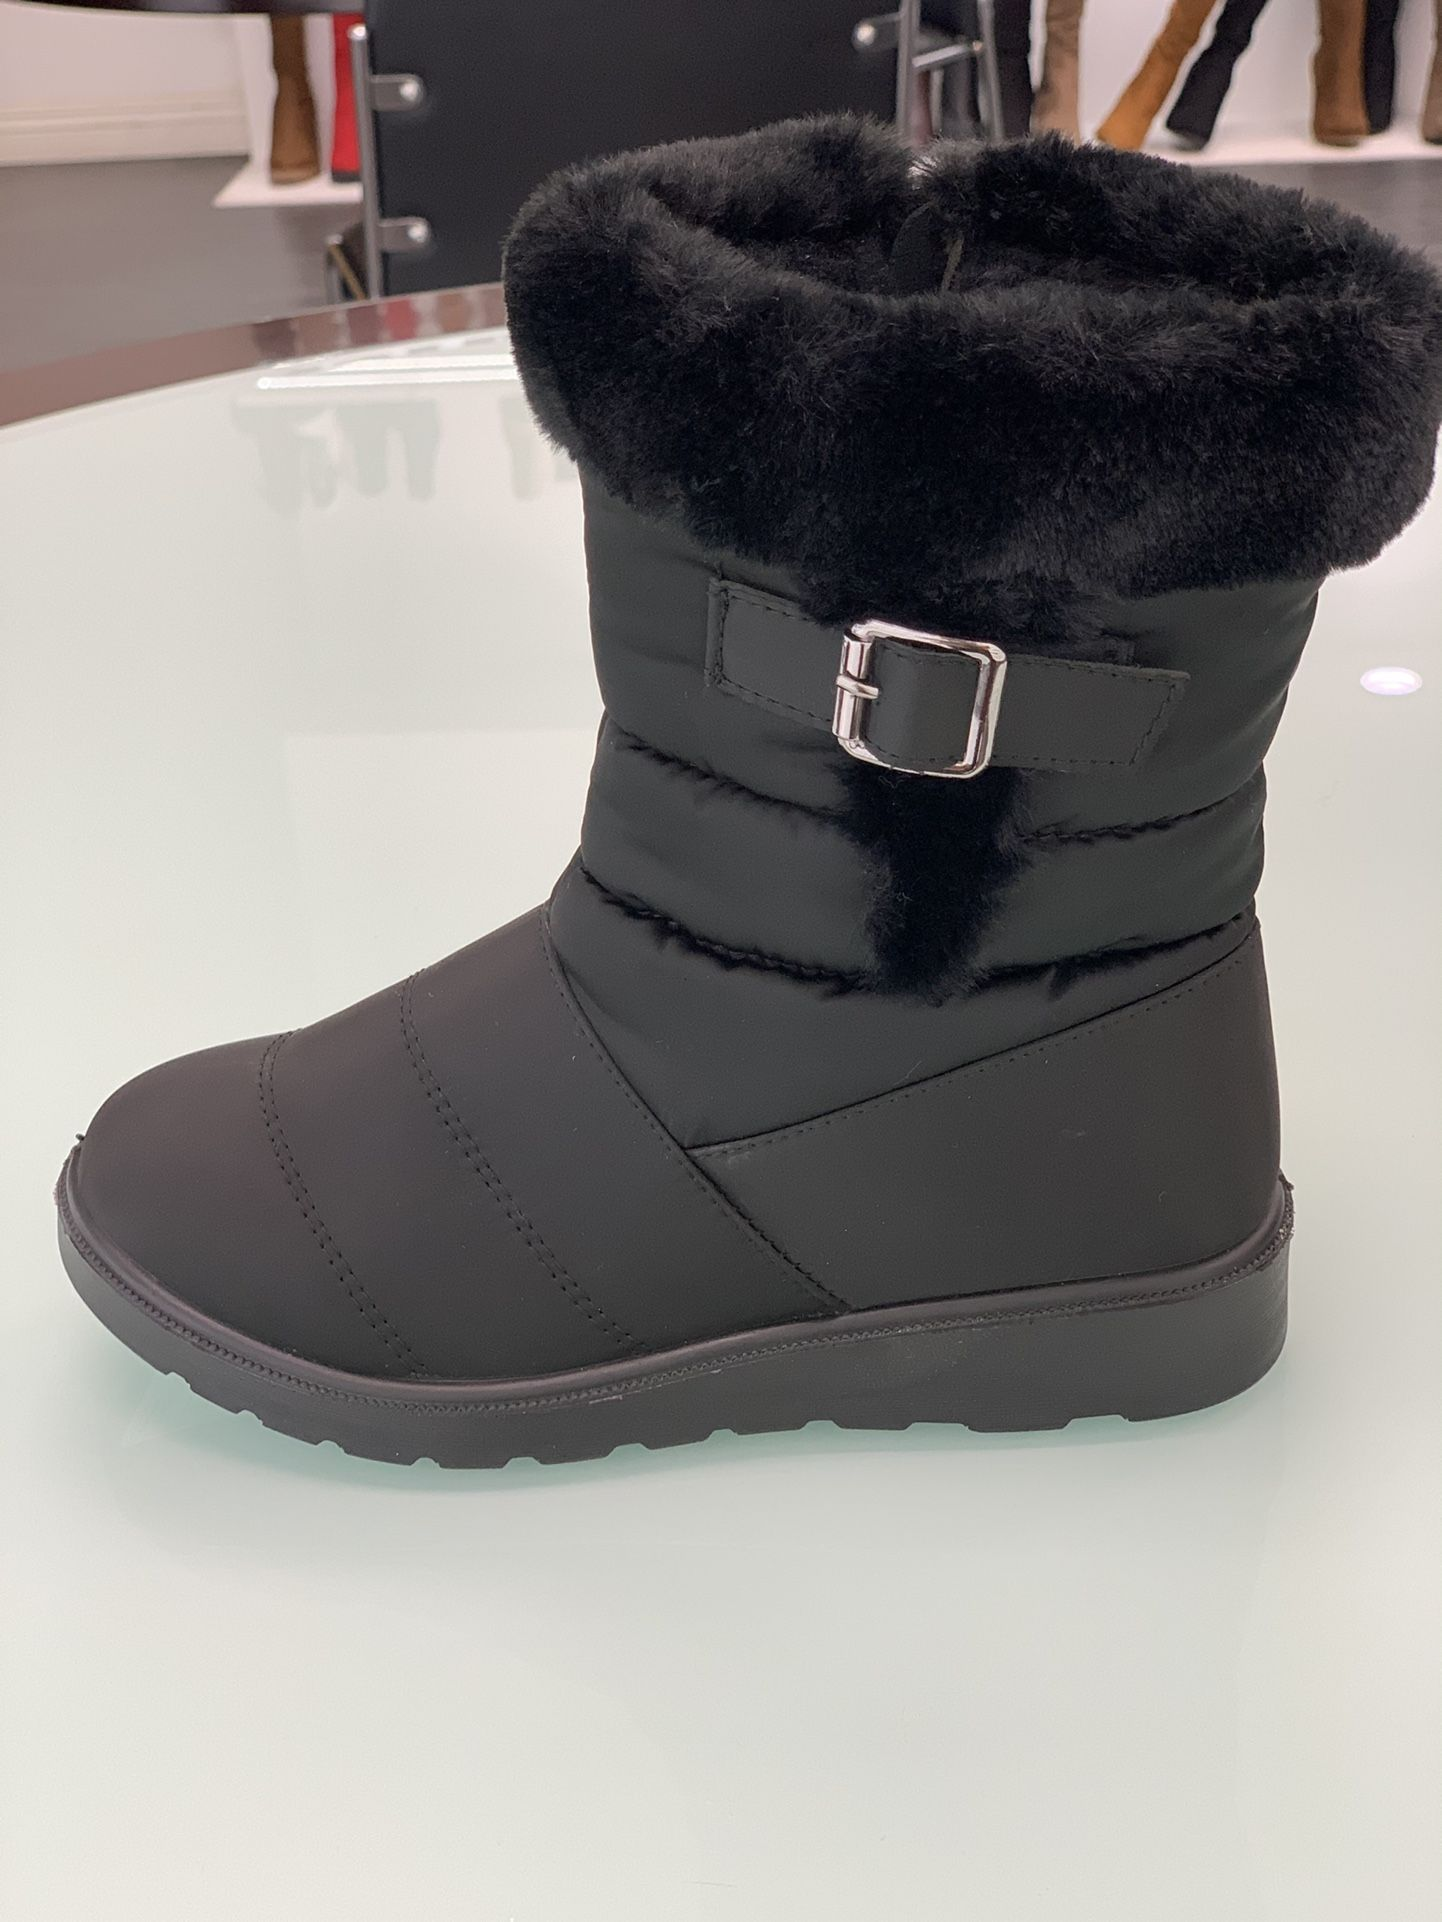 Winter Warm Snow Women's Boots Sizes 5.5, 6,6.5,7,7.5,8,8.5,9,10 ...$25 Per Pair Ask For Your Size And Color